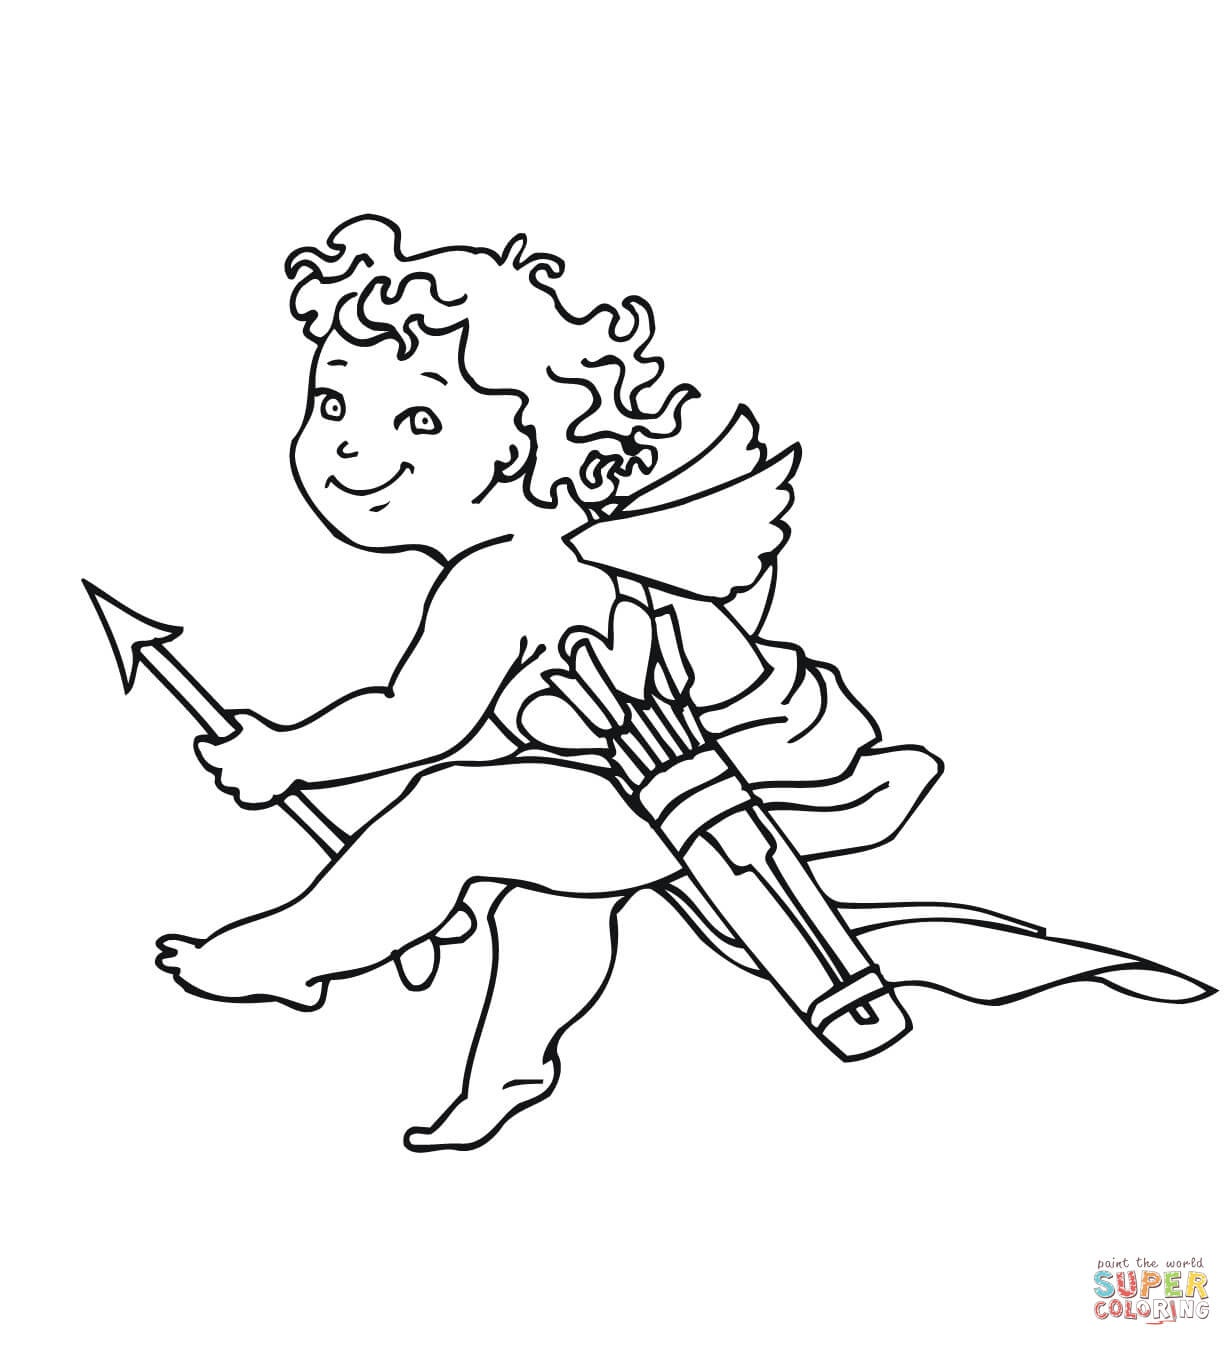 Valentine's Day Cupid Coloring Page   Free Printable Coloring Pages - Free Printable Pictures Of Cupid